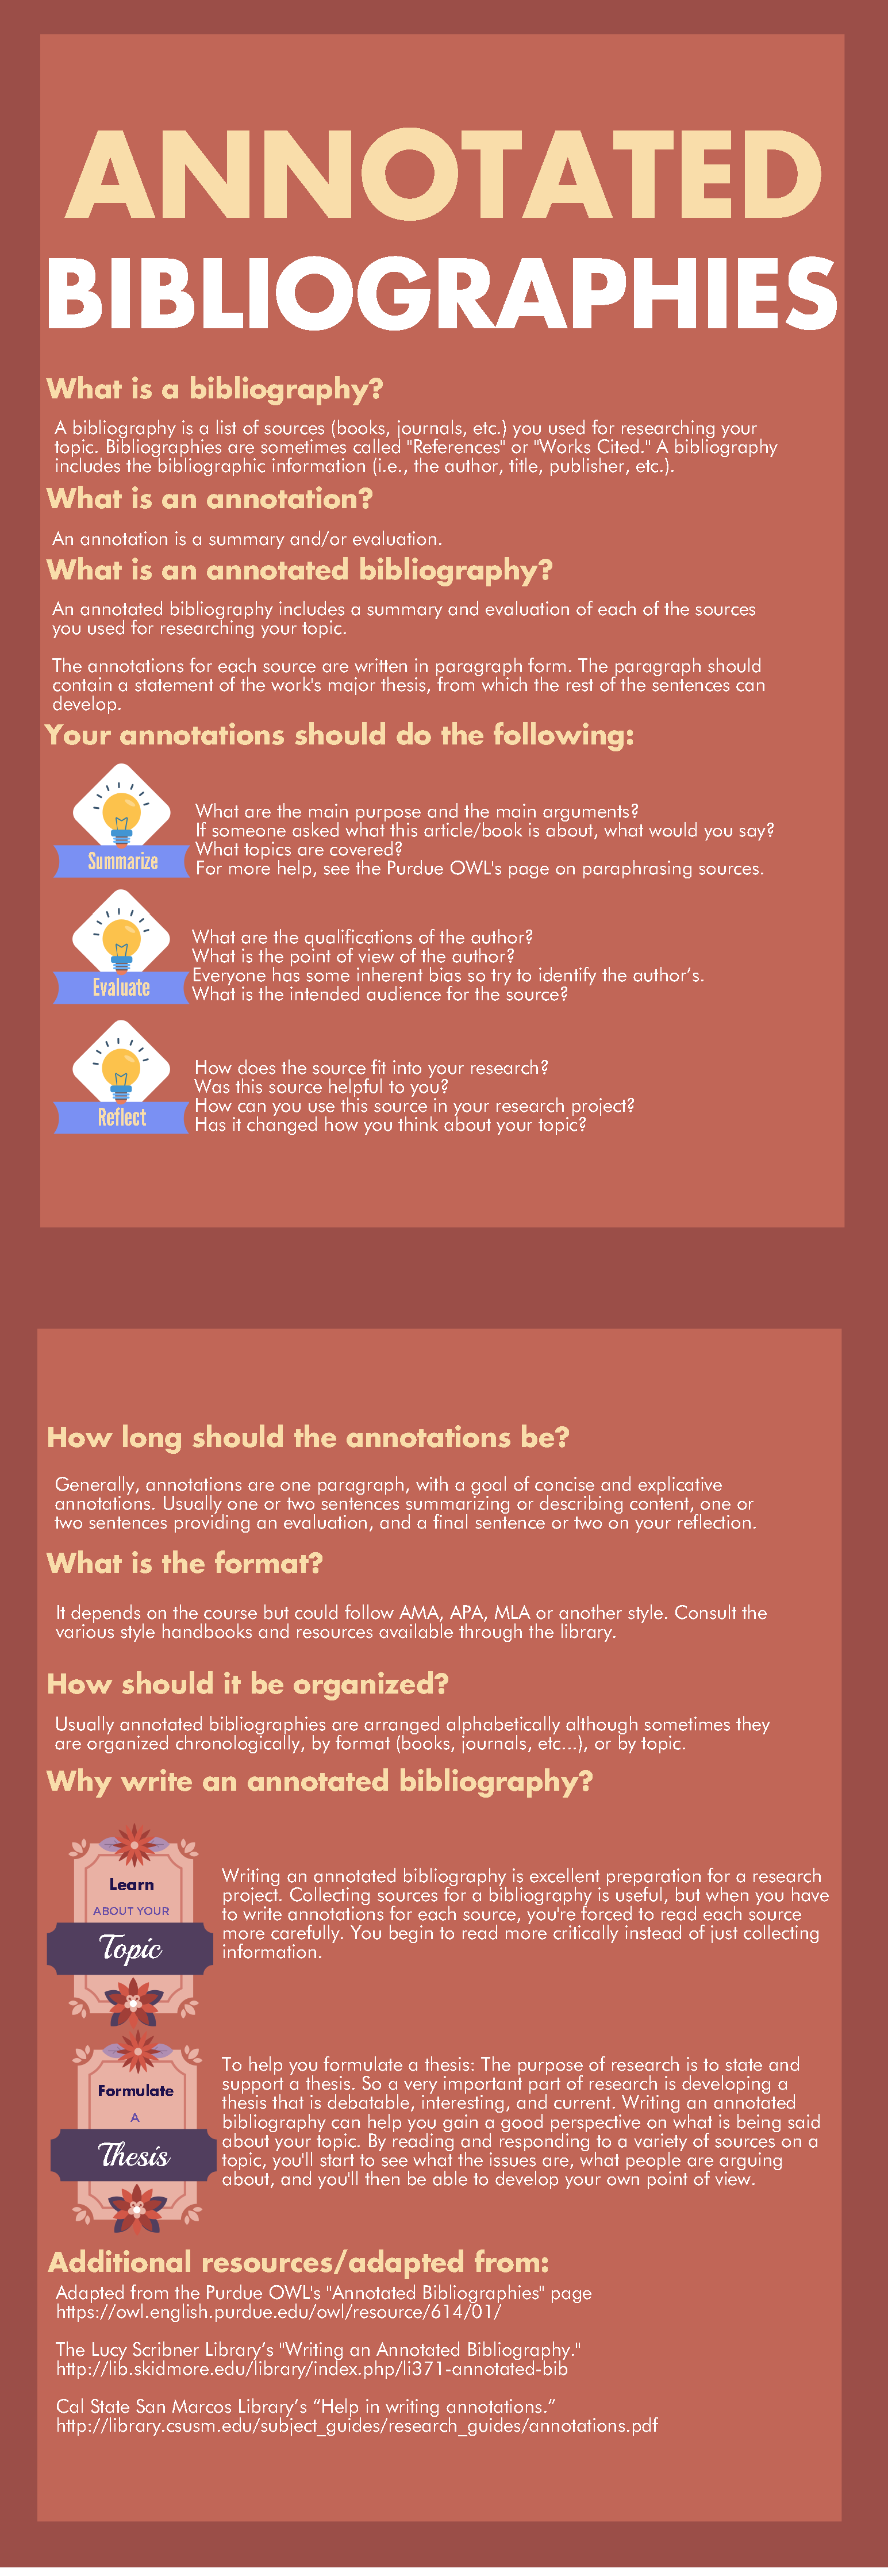 Annotated Bibliographies Infographic